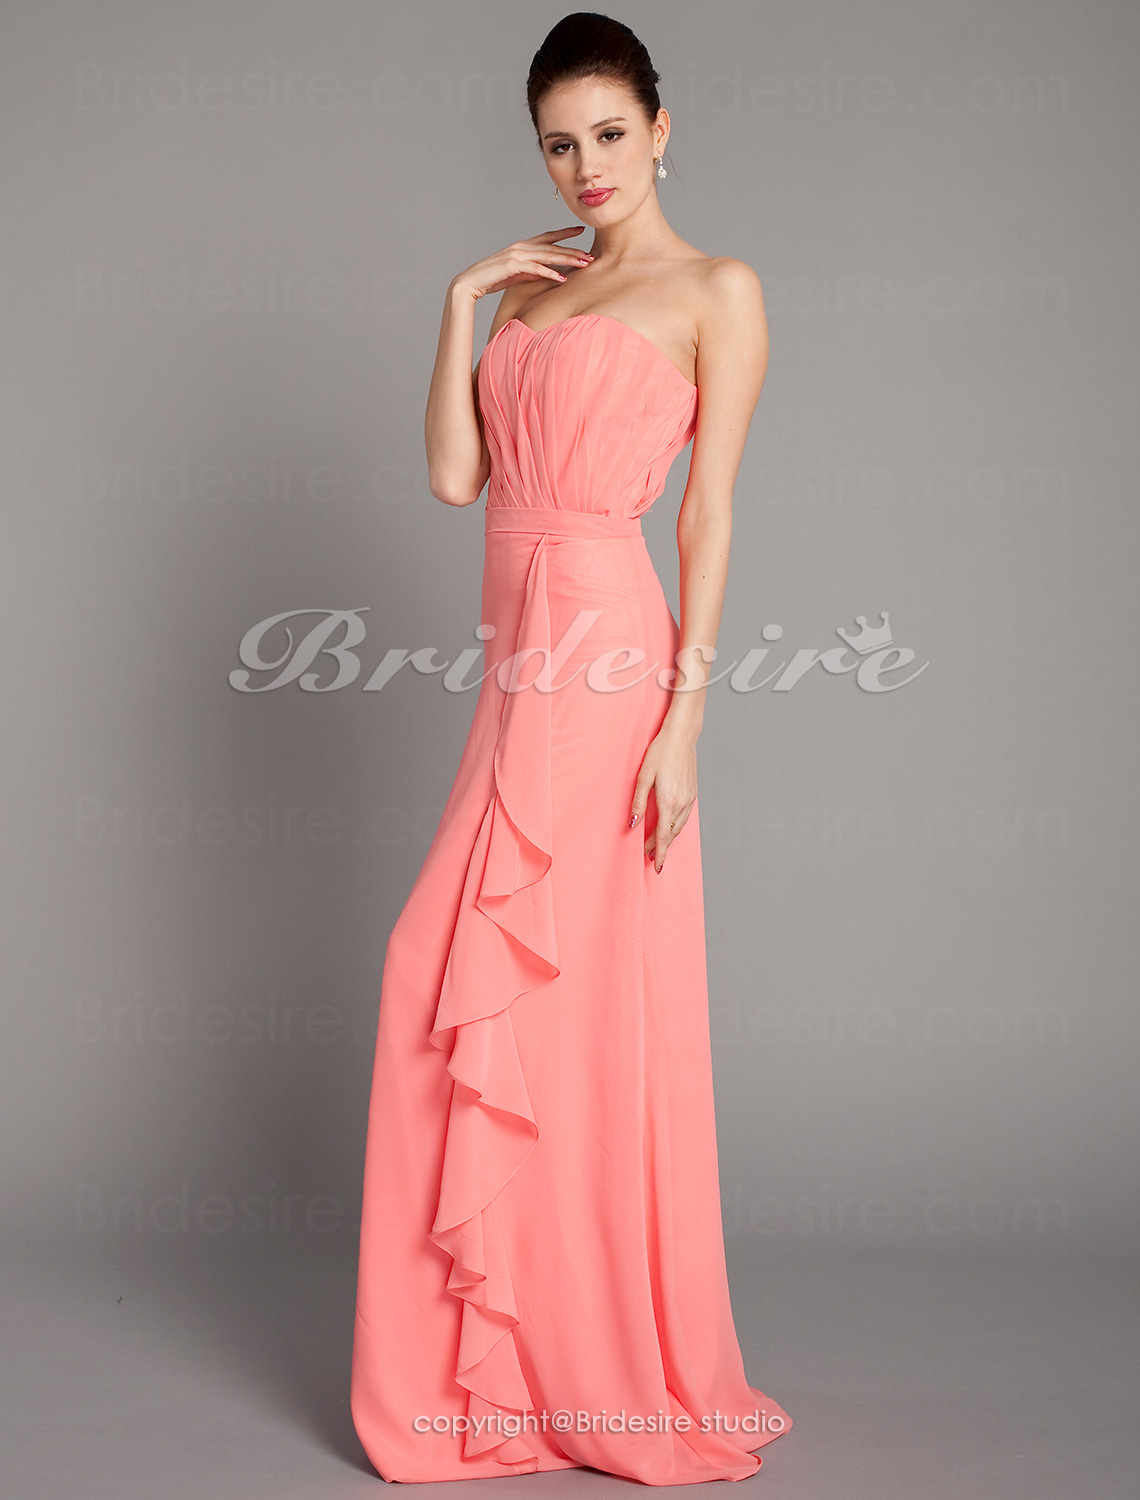 Sheath/ Column Chiffon Strapless Side-Draped Floor-length Brides